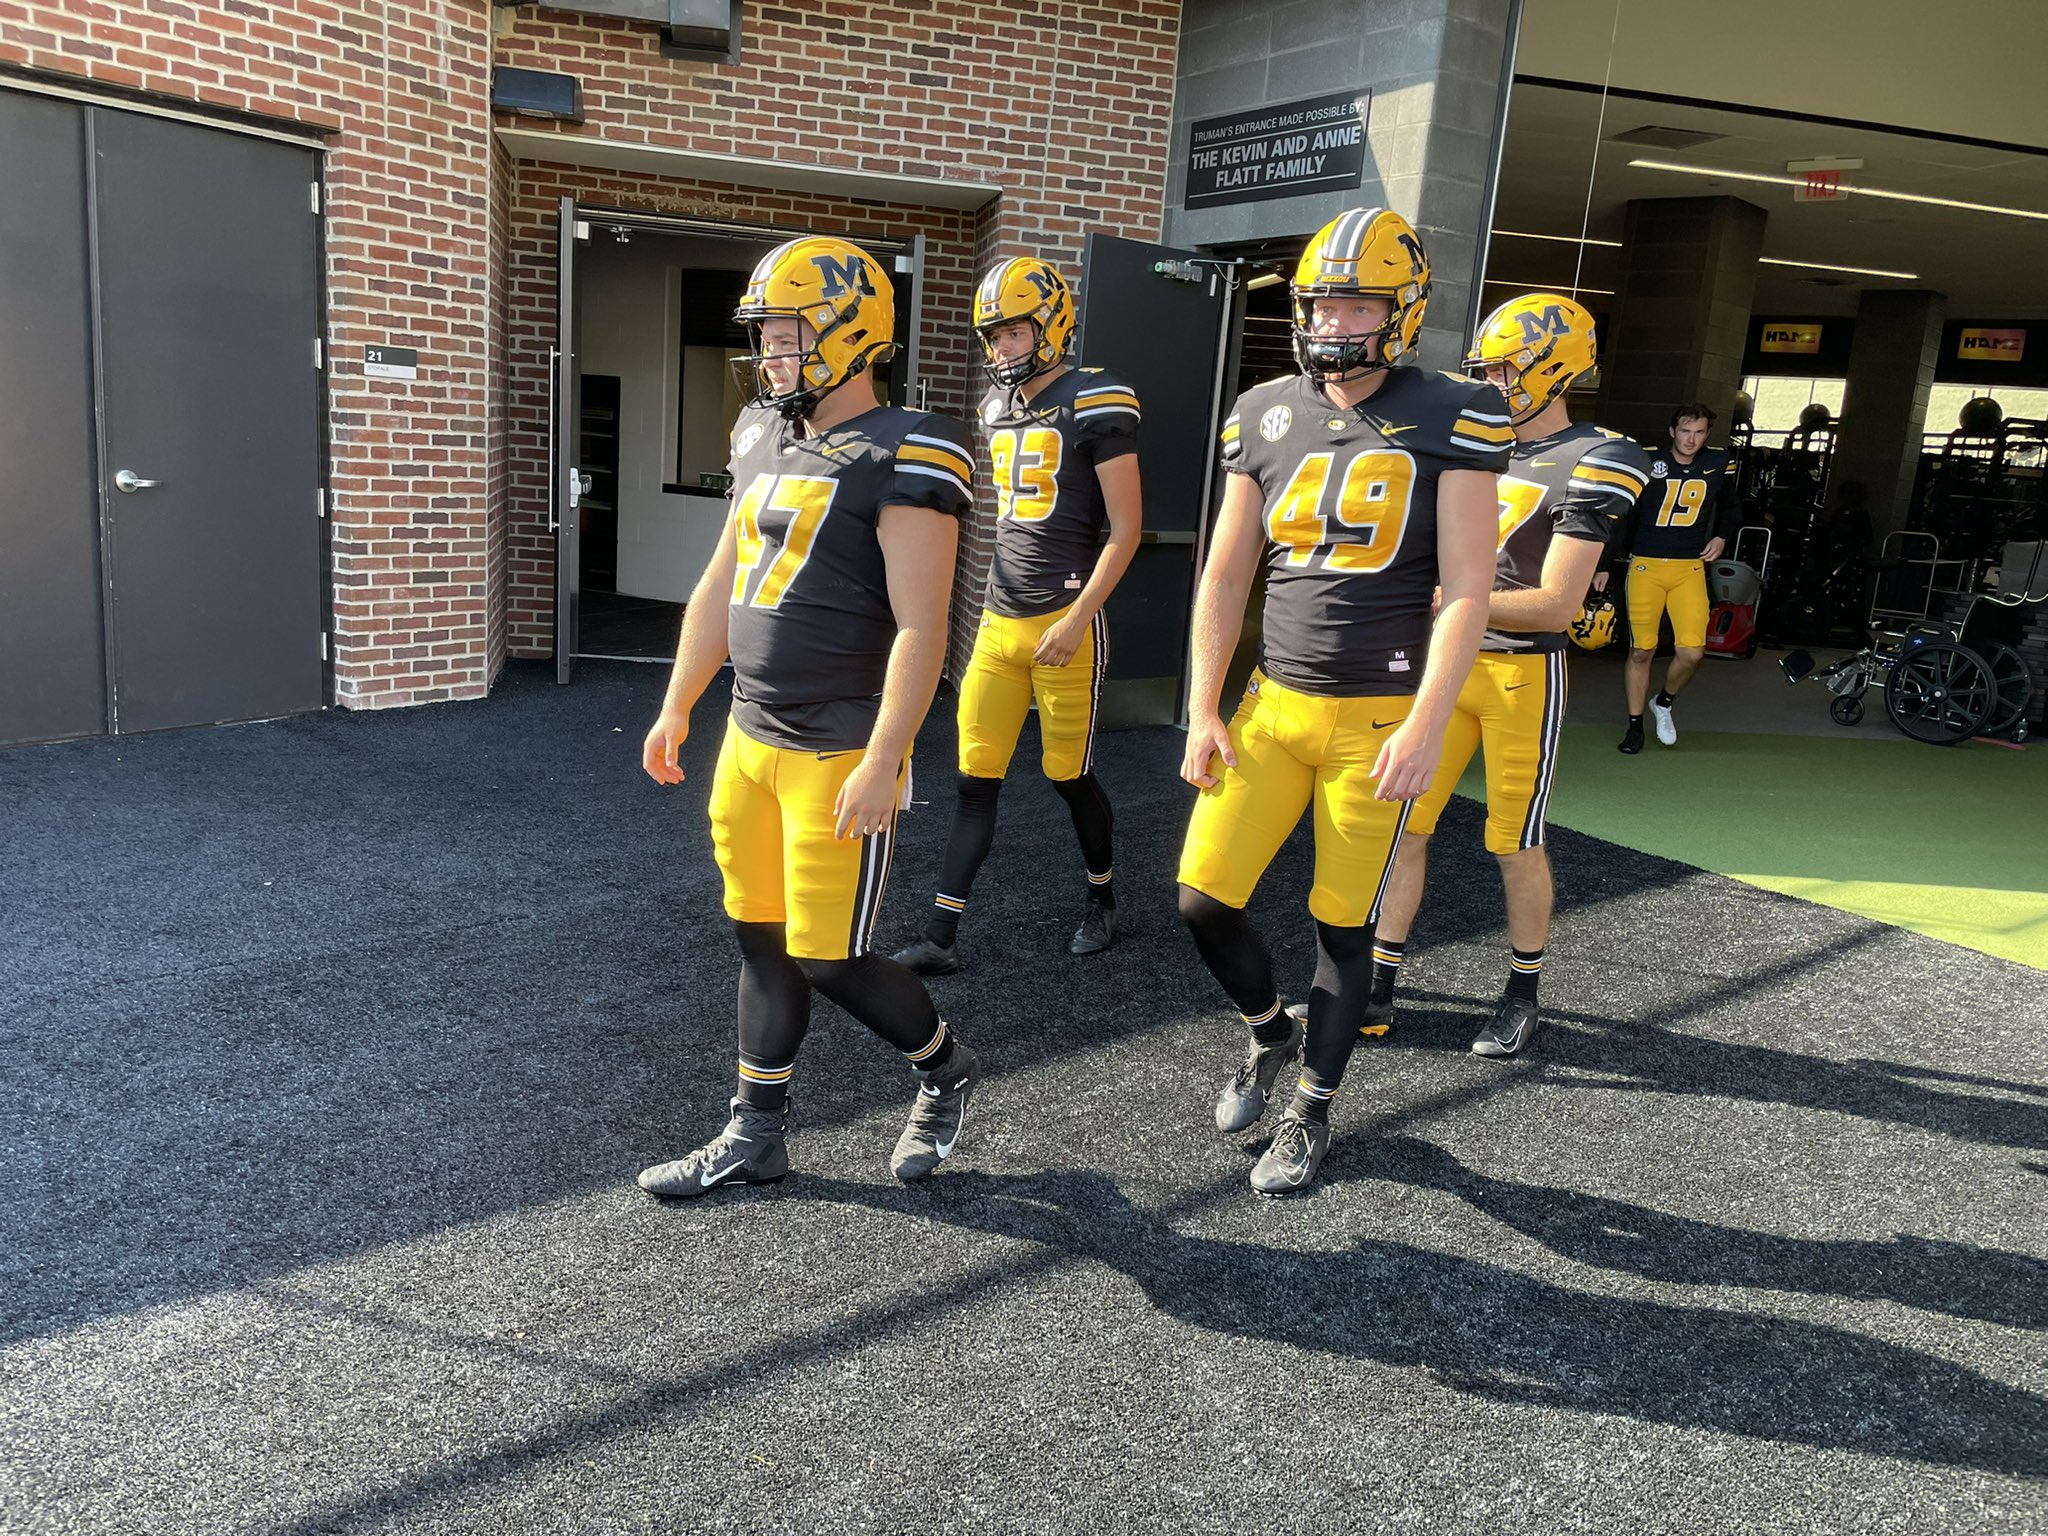 Mizzou players take the field against Southeast Missouri State on Saturday, Sept. 18, 2021.